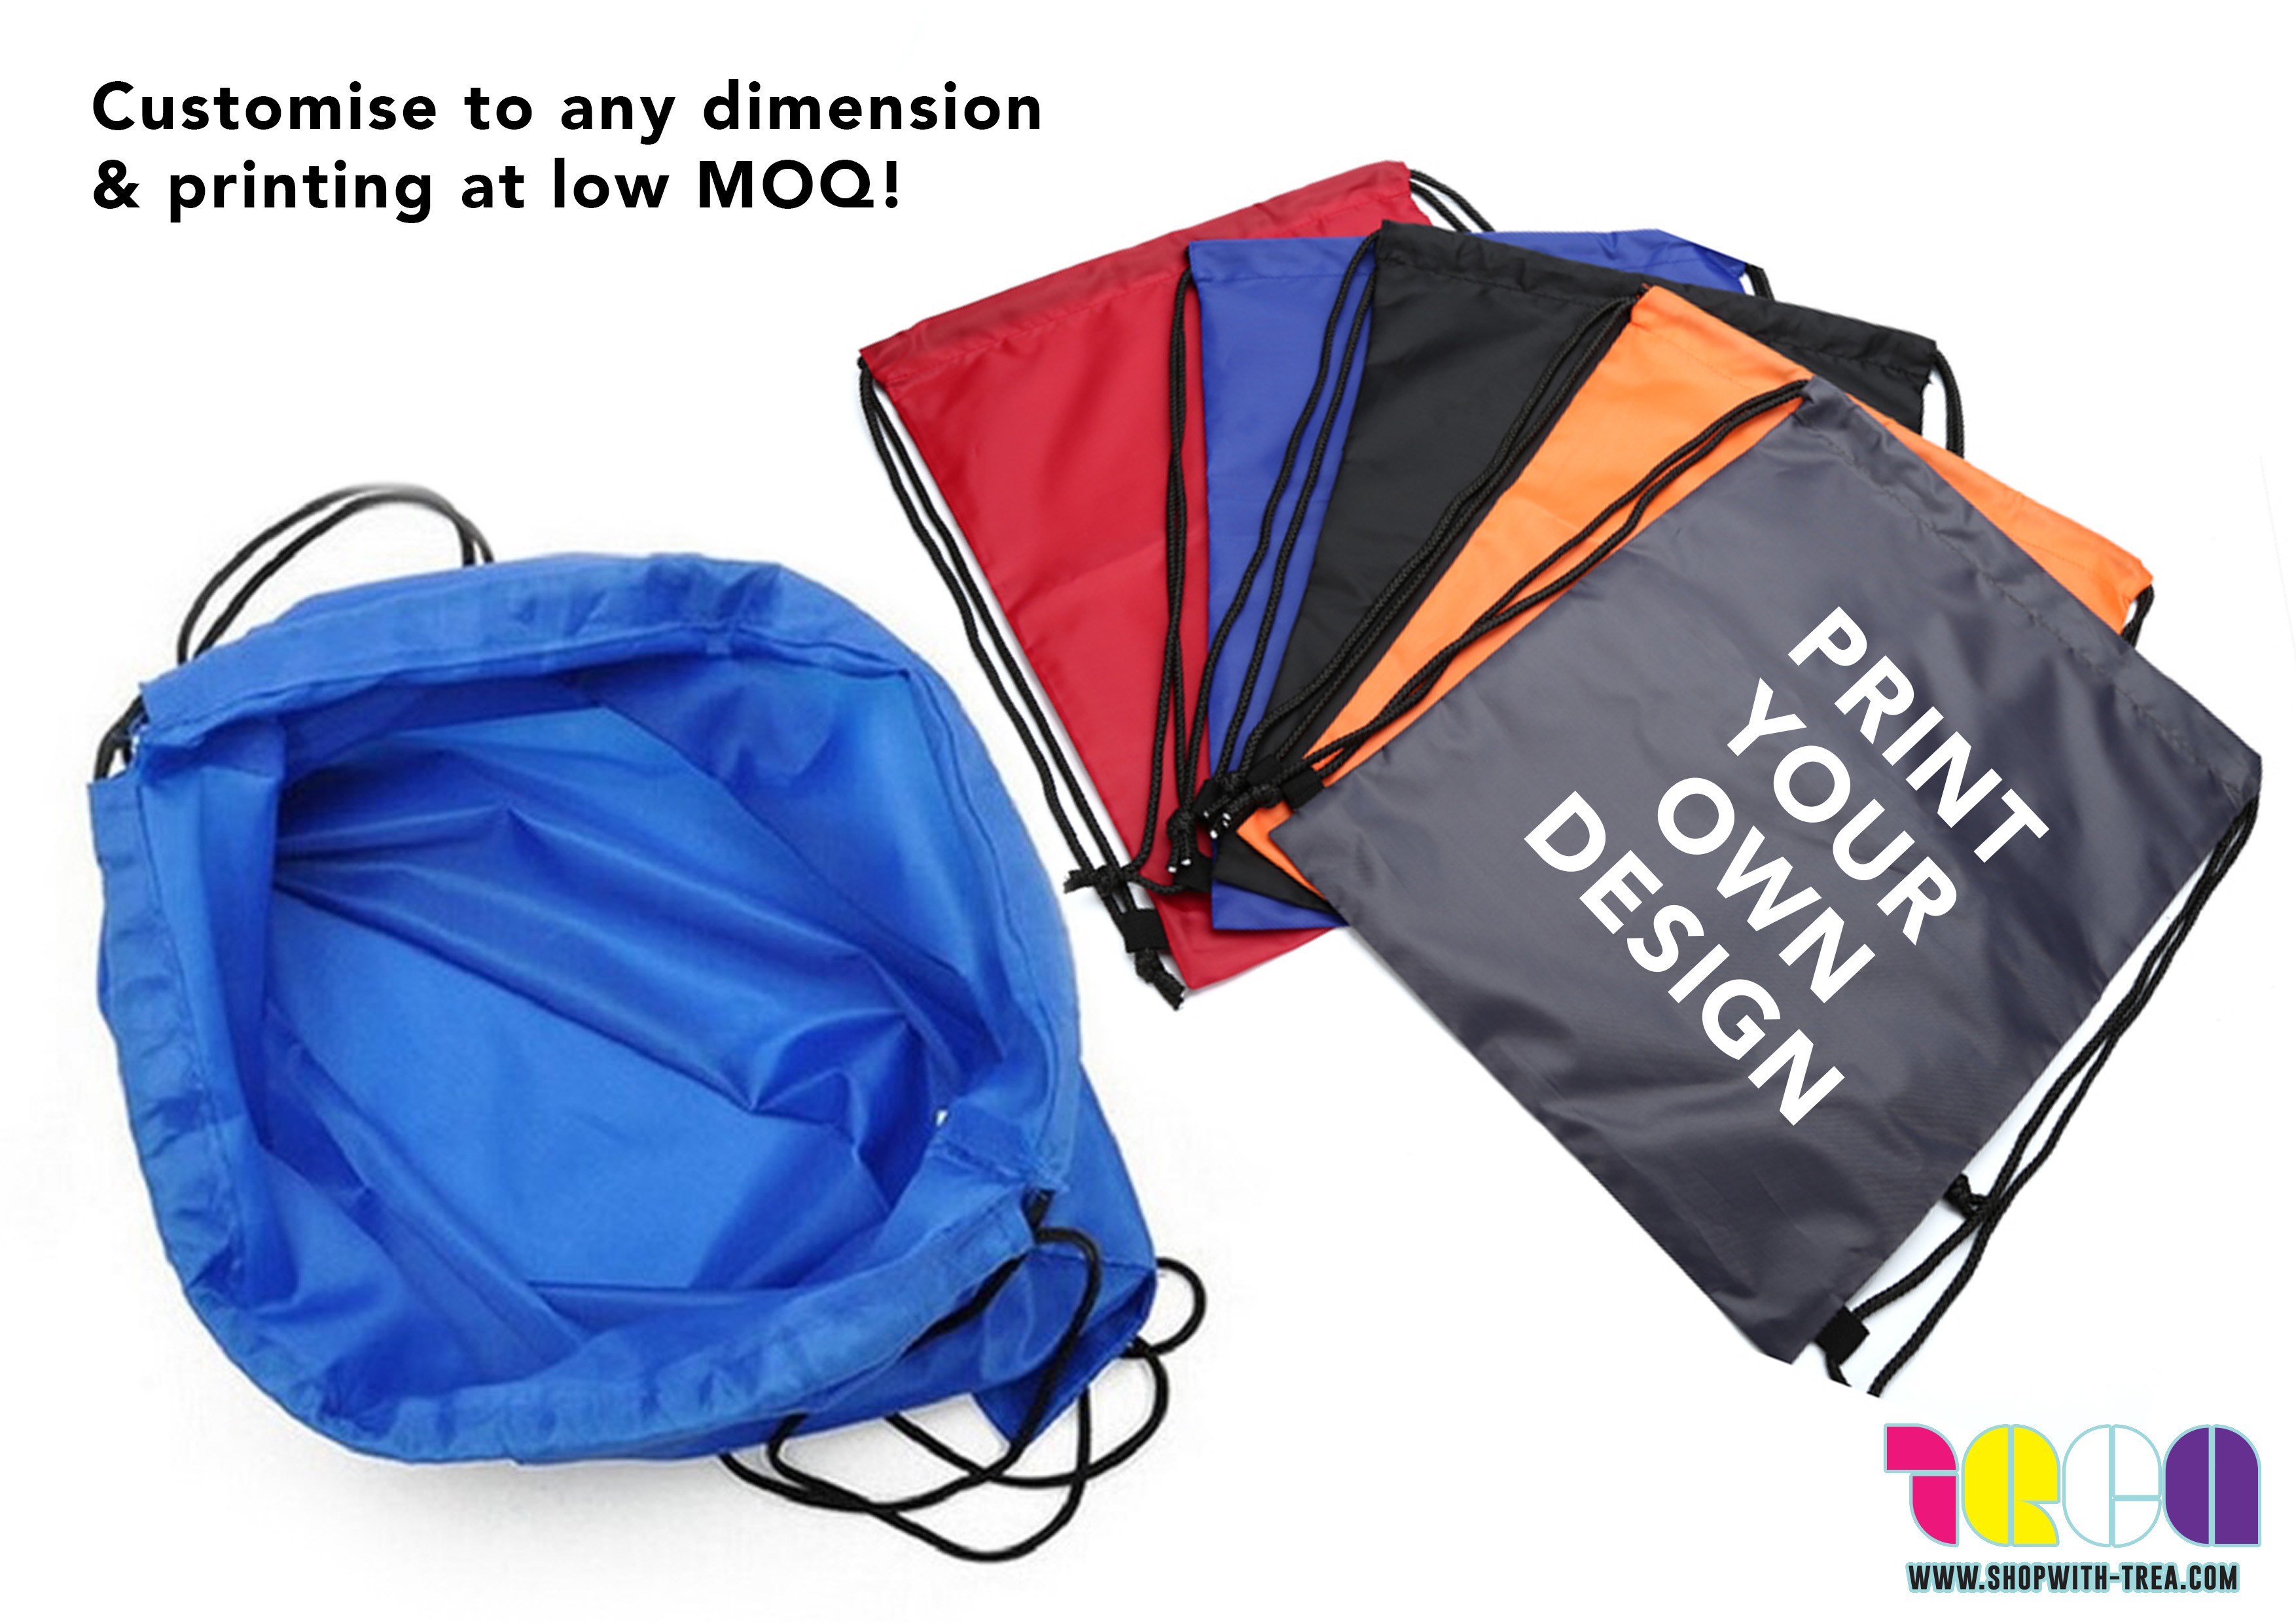 Customise polyester nylon Drawstring bag